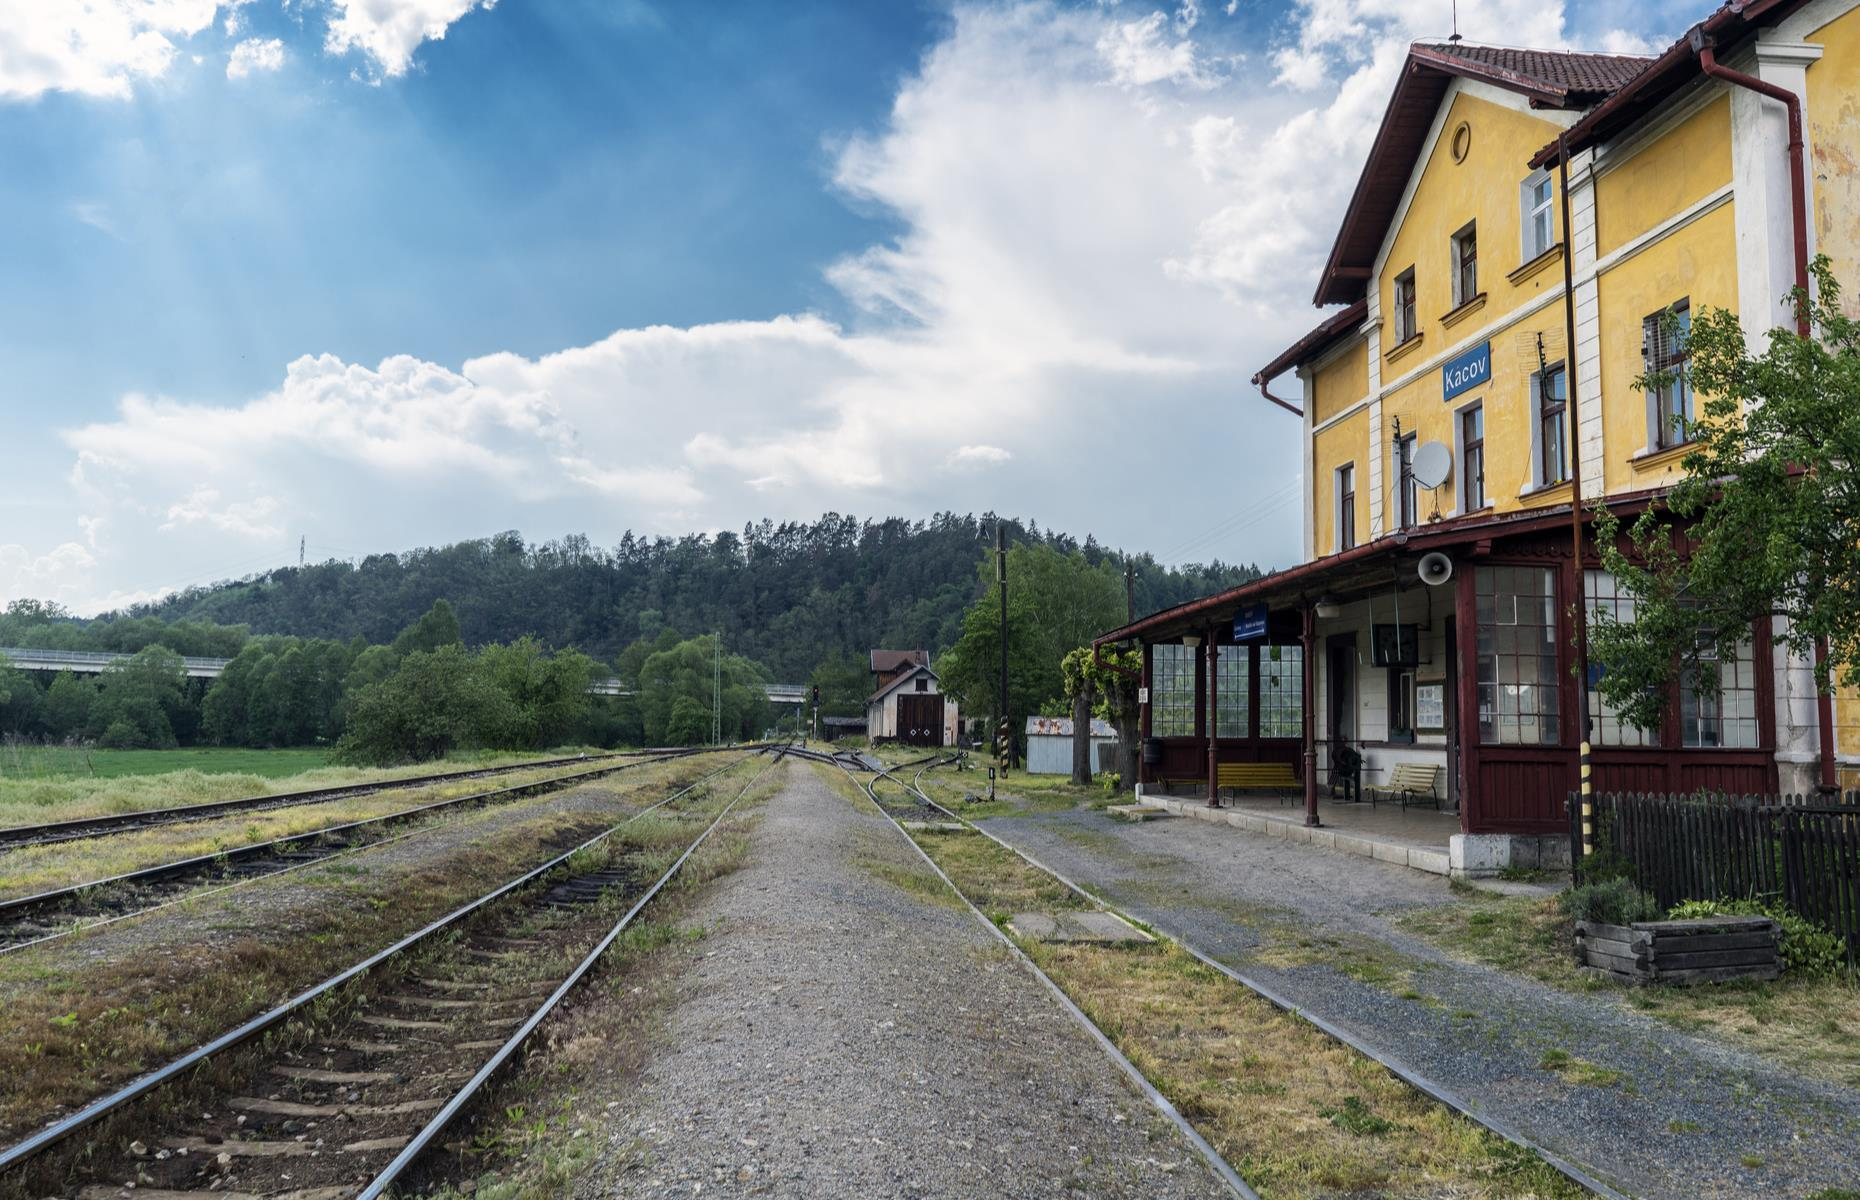 Slide 9 of 33: This picturesque railway station can be seen in the small town of Kácov in Czech Republic's Central Bohemia region. Though abandoned and neglected, the disused station building has plenty of charm. It has even been used as a filming location for movies such as the 2001 Czech dramaDark Blue World.